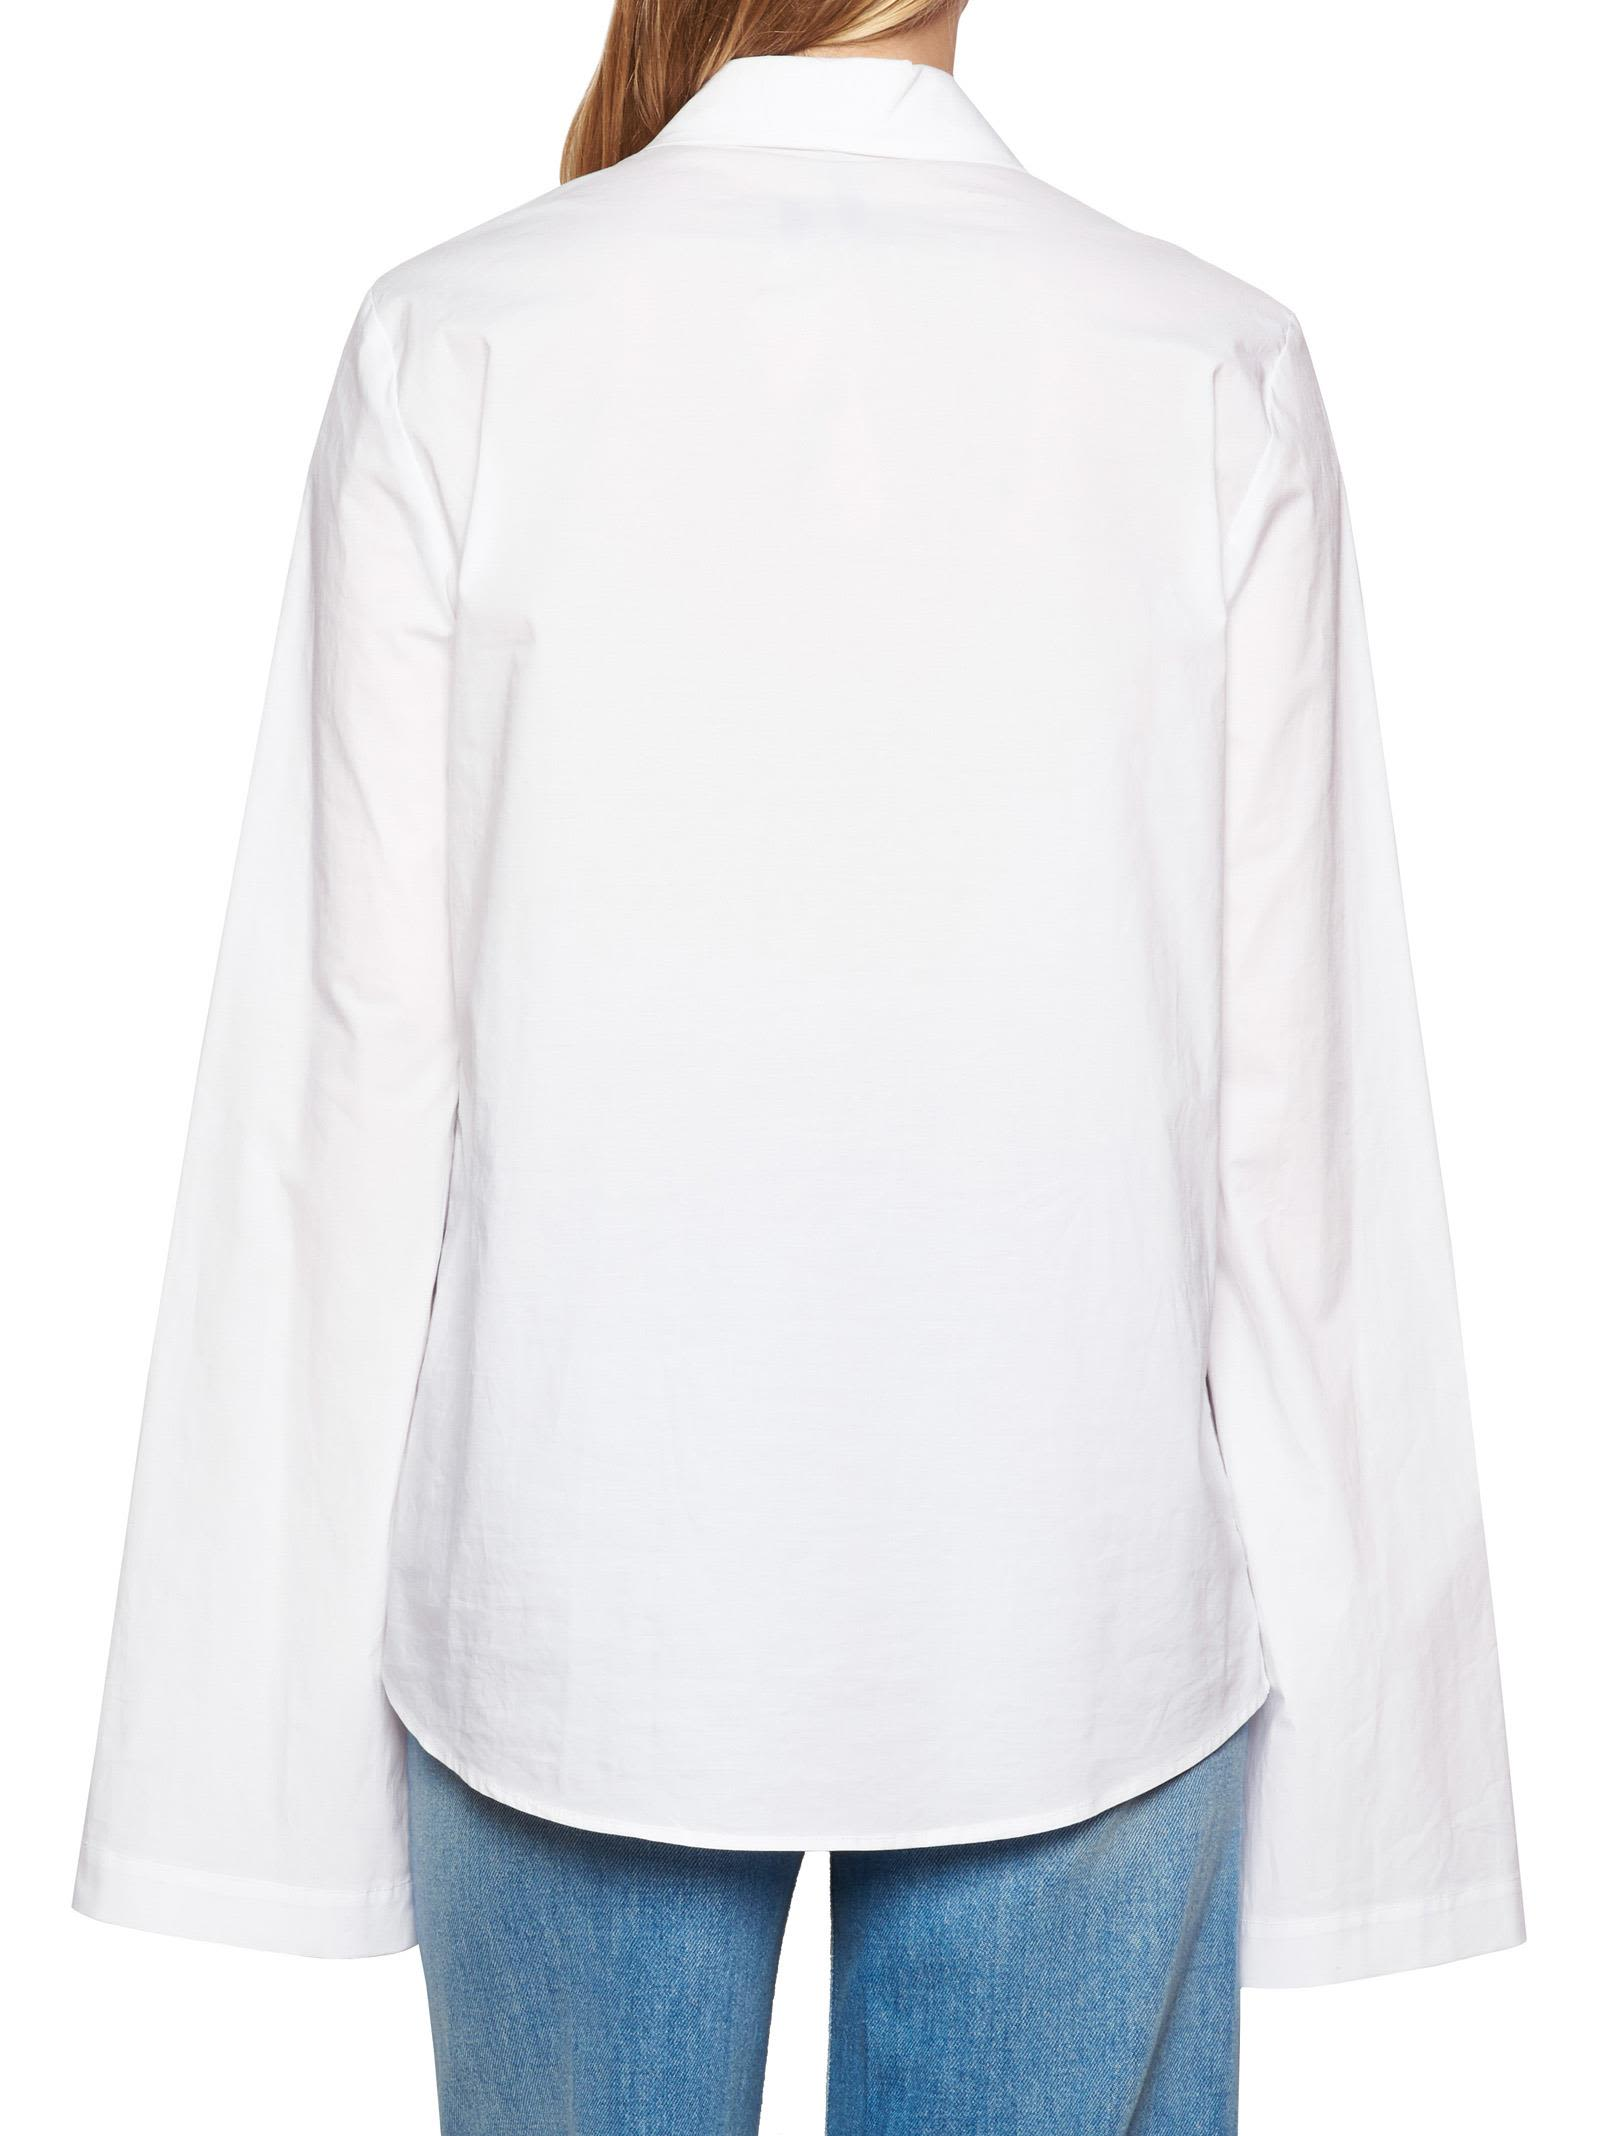 Clearance Outlet Cheap Find Great White Propus shirt Vivetta Outlet Really Free Shipping Free Shipping Exclusive UAxik